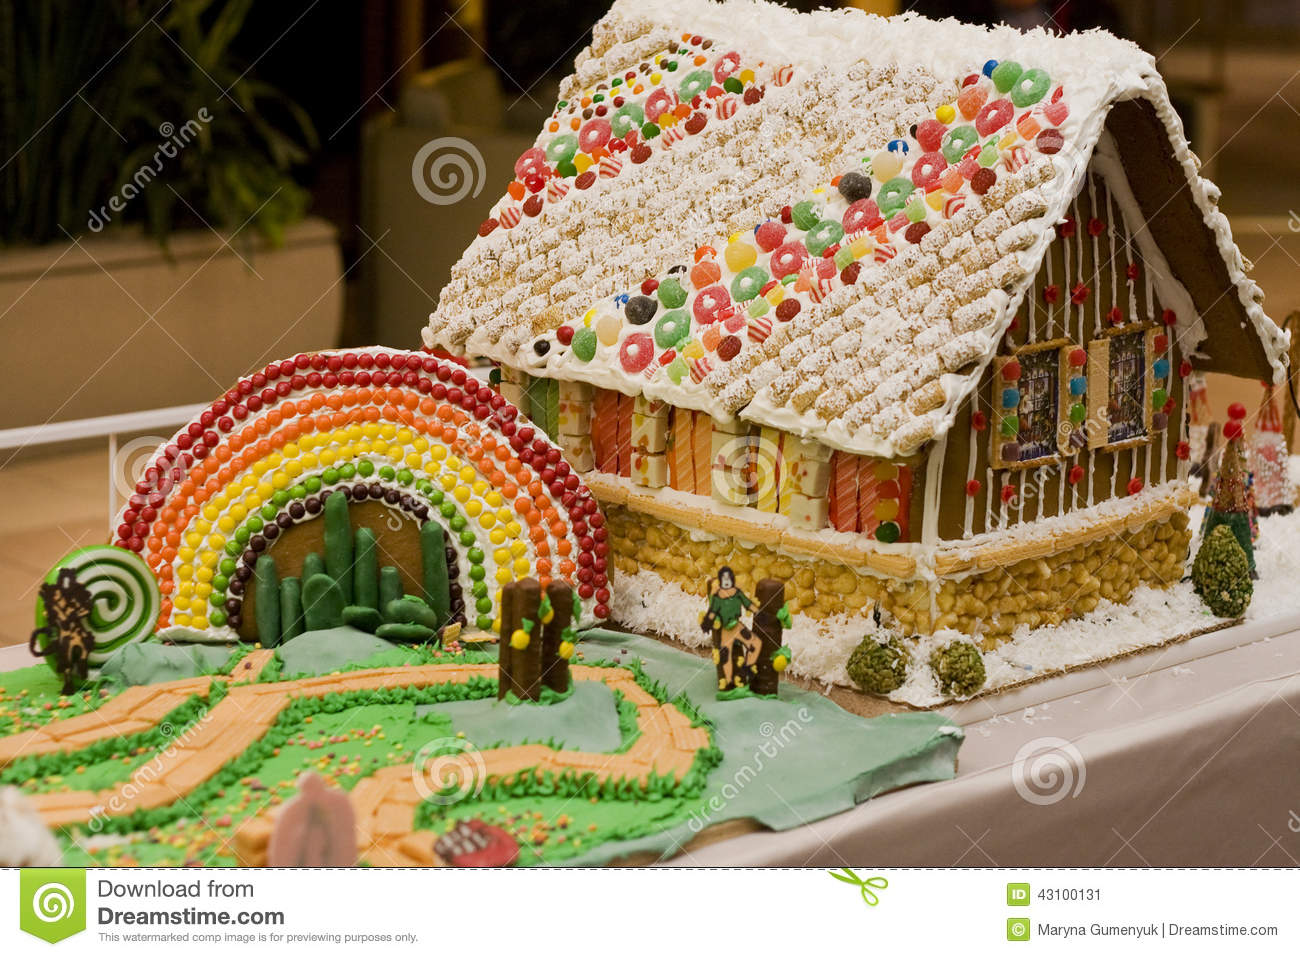 download gingerbread house stock image image of decor icing 43100131 - Gingerbread House Christmas Decorations